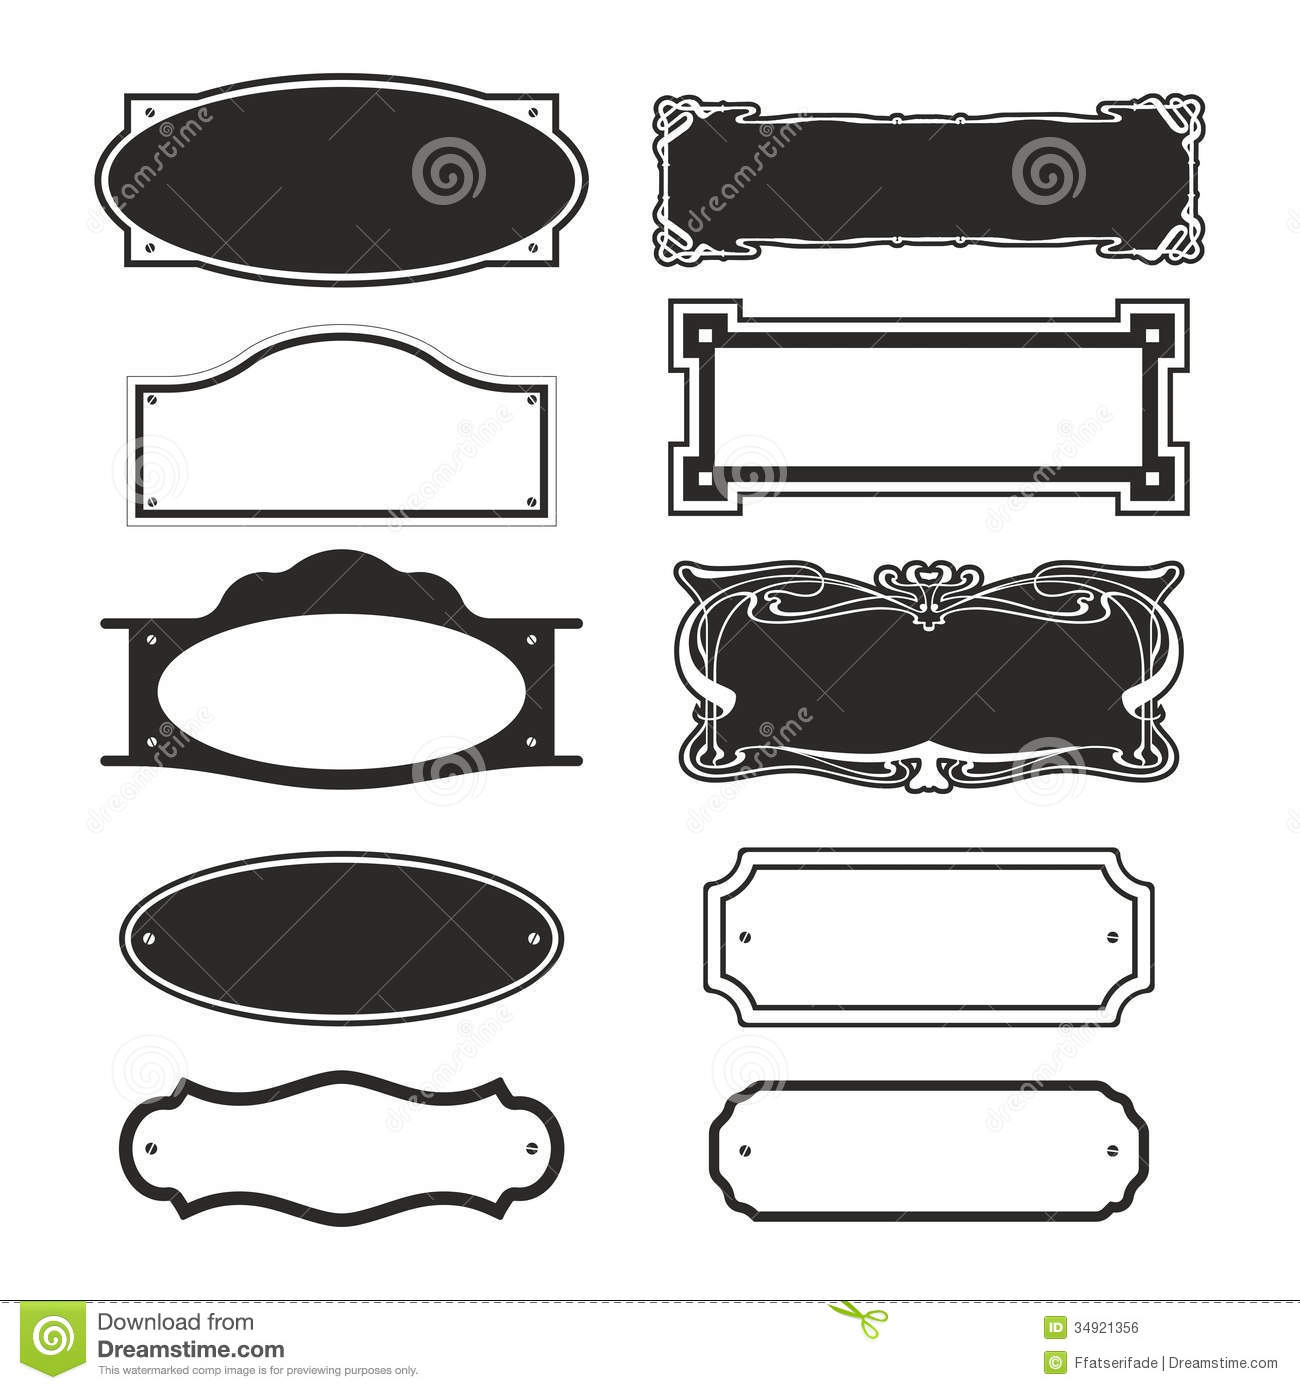 Vintage Name Plate Clipart.